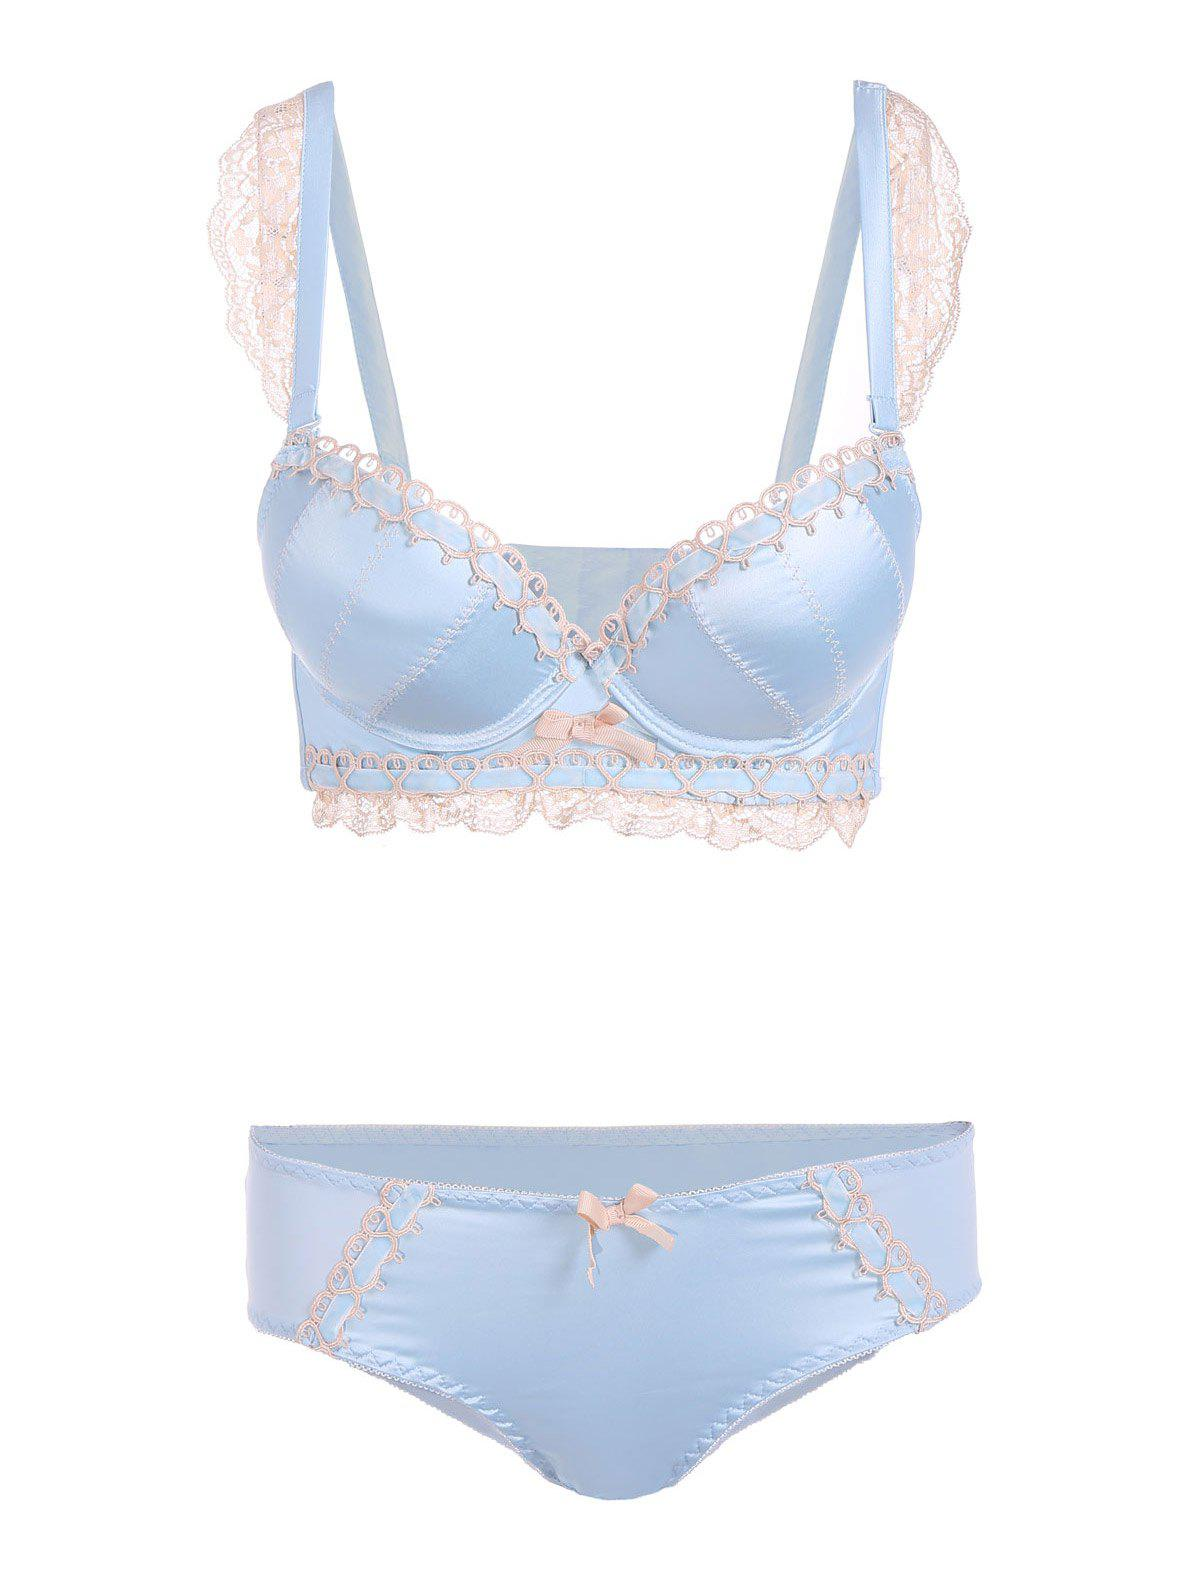 Padded Lace Embroidered Push Up Bra Set 197408301